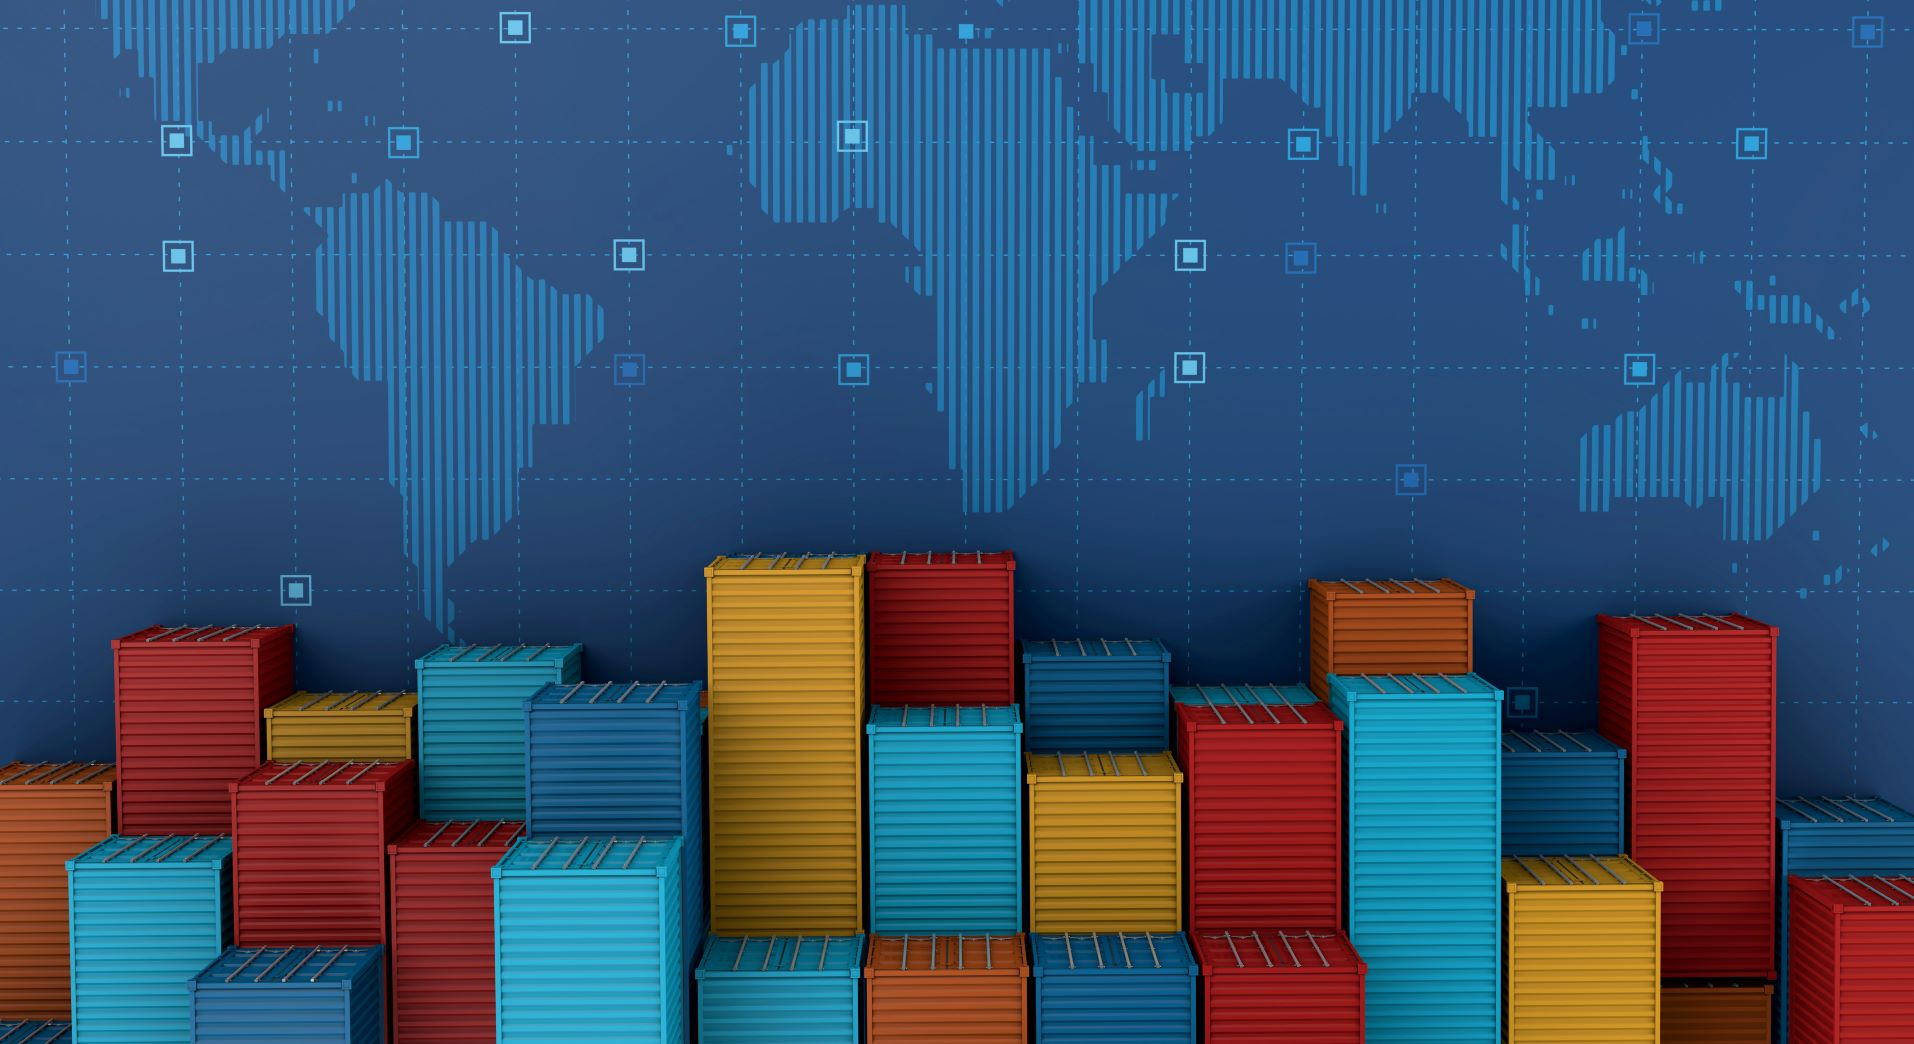 The Top 4 Benefits of Obtaining FTZ Status